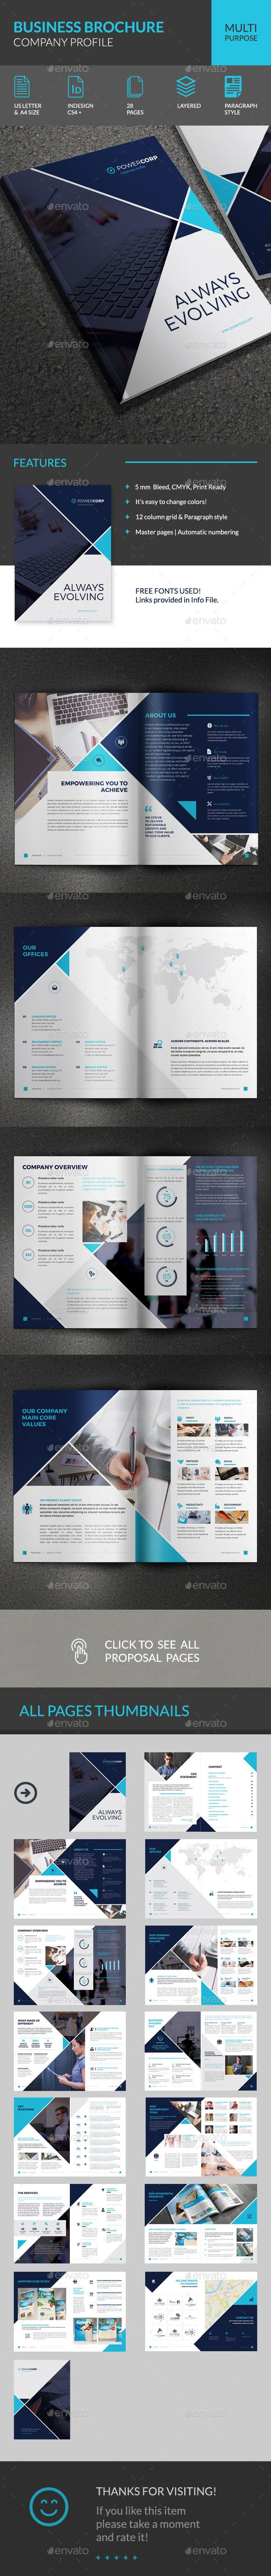 Example Of Company Profile Template Unique Best 1030 Infographie Ideas On Pinterest  Artist Studios Drawing .